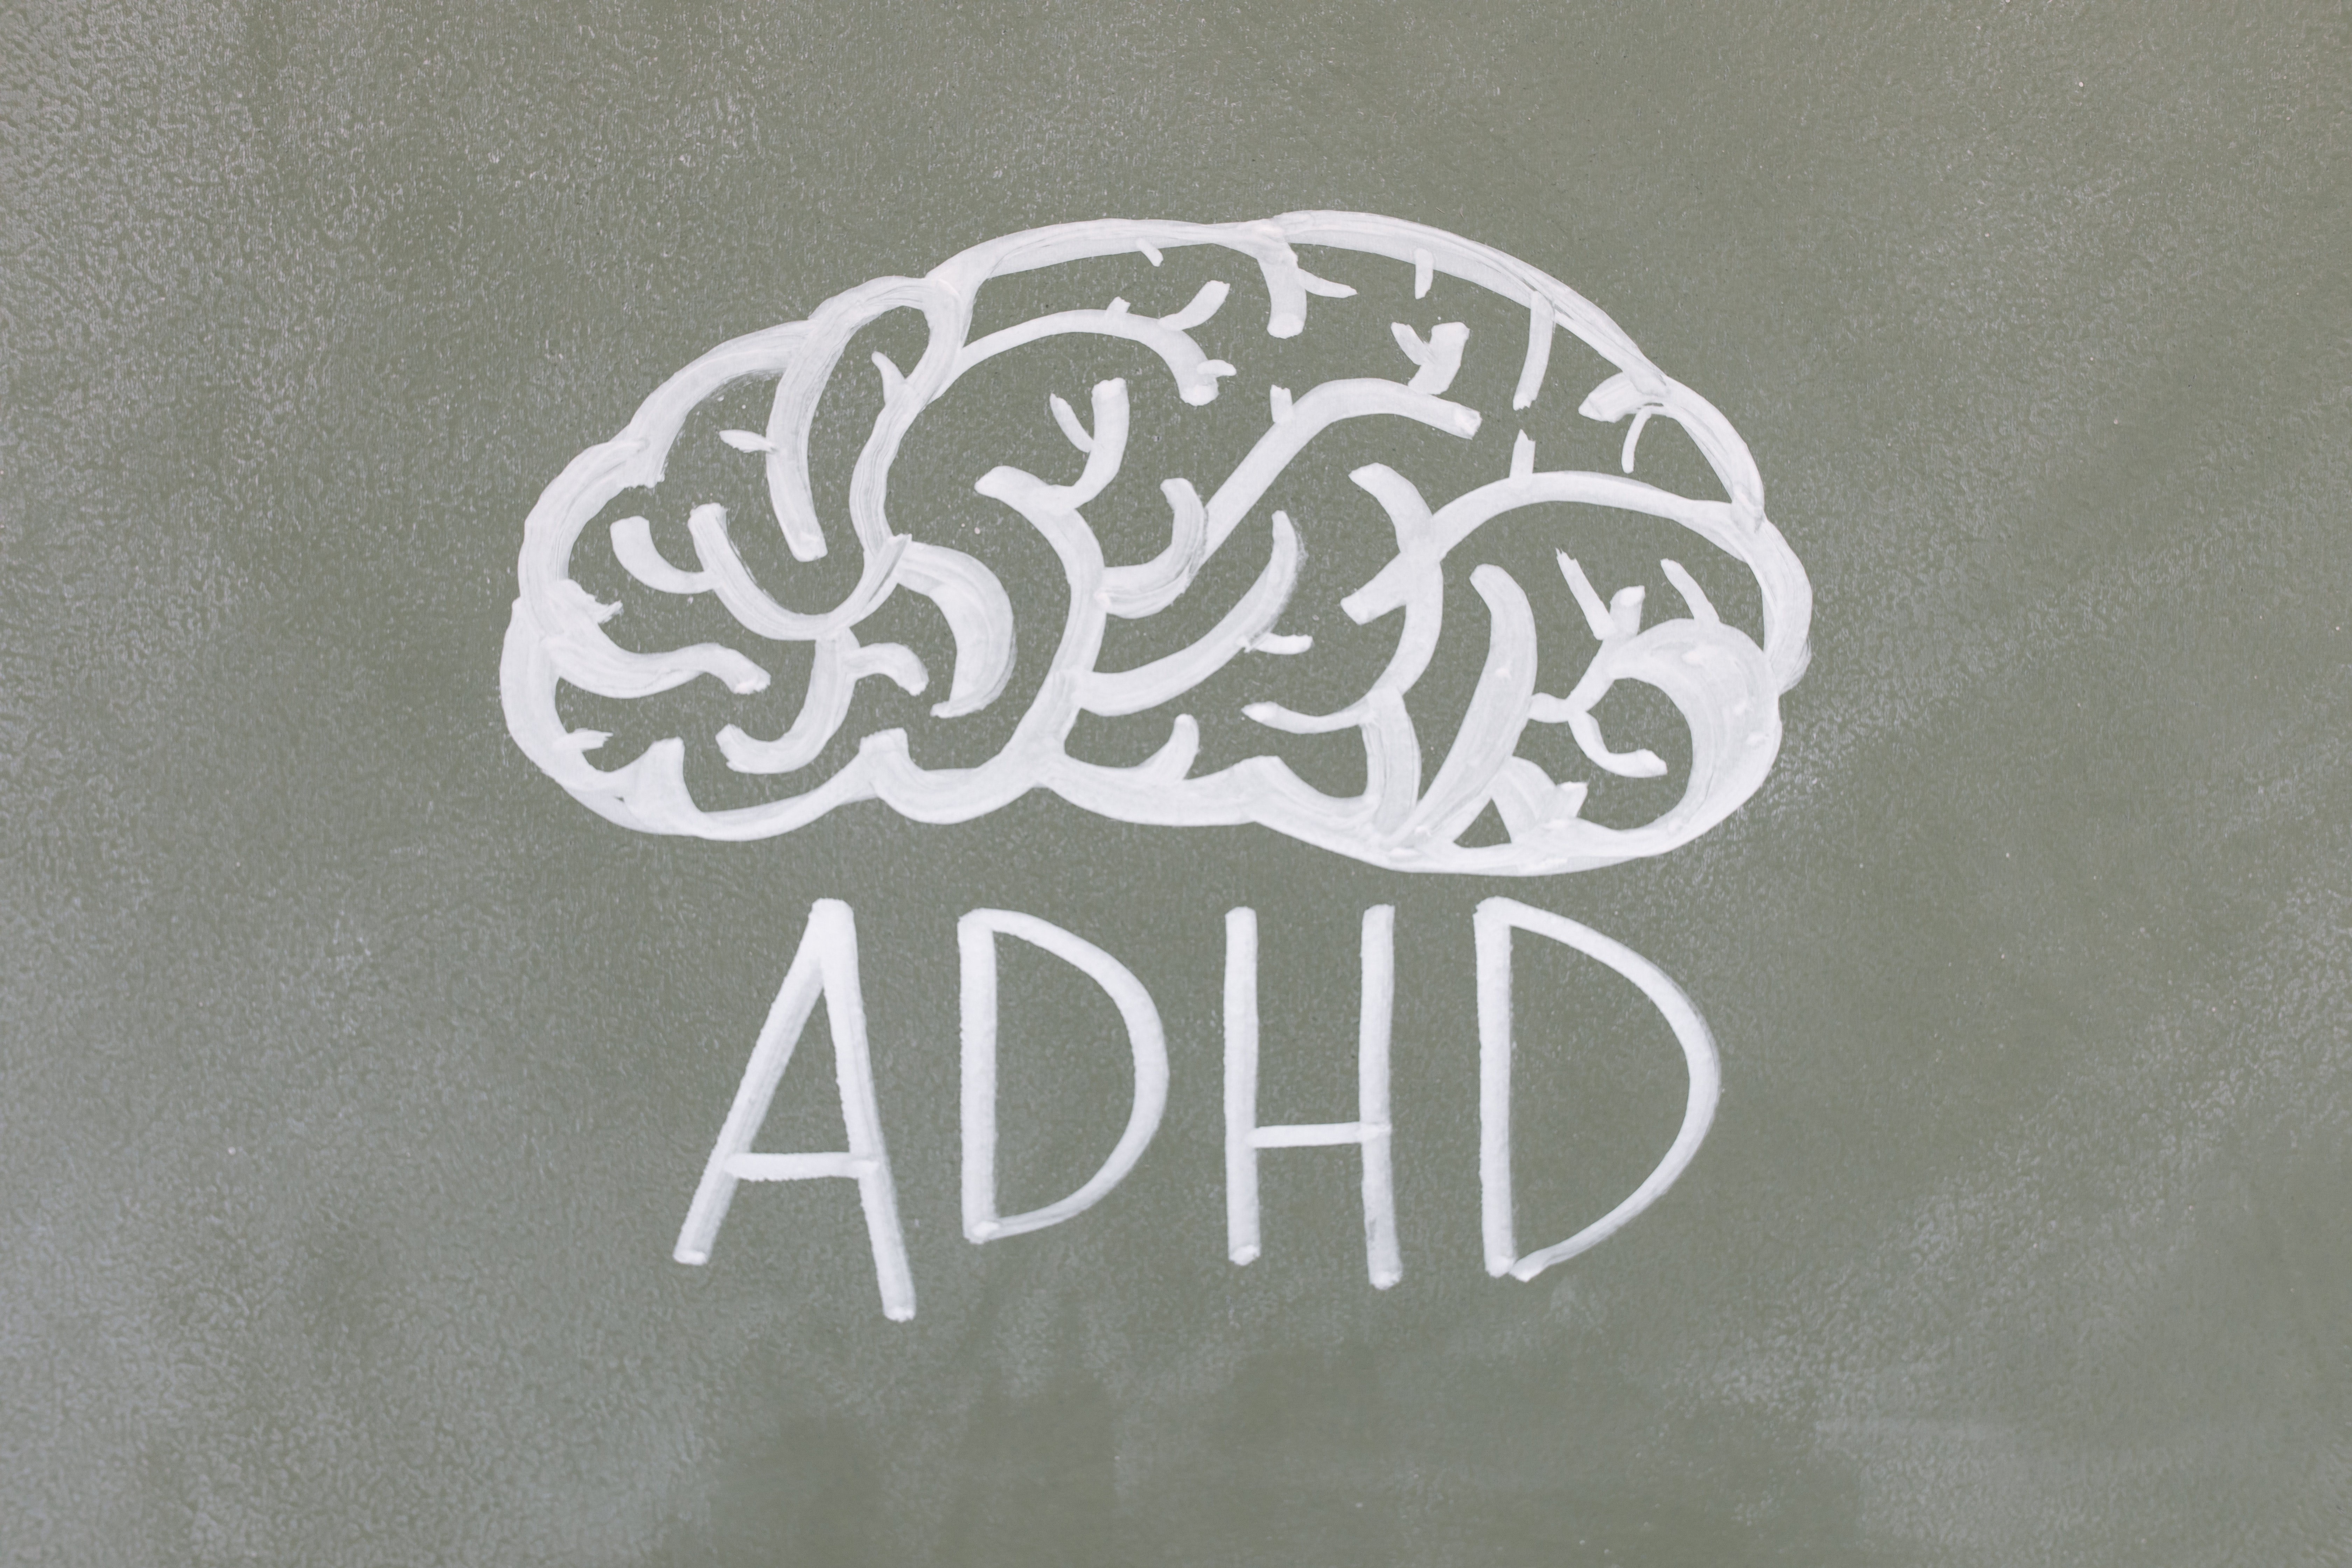 image from Executive Function: Common Challenges for Children with ADHD